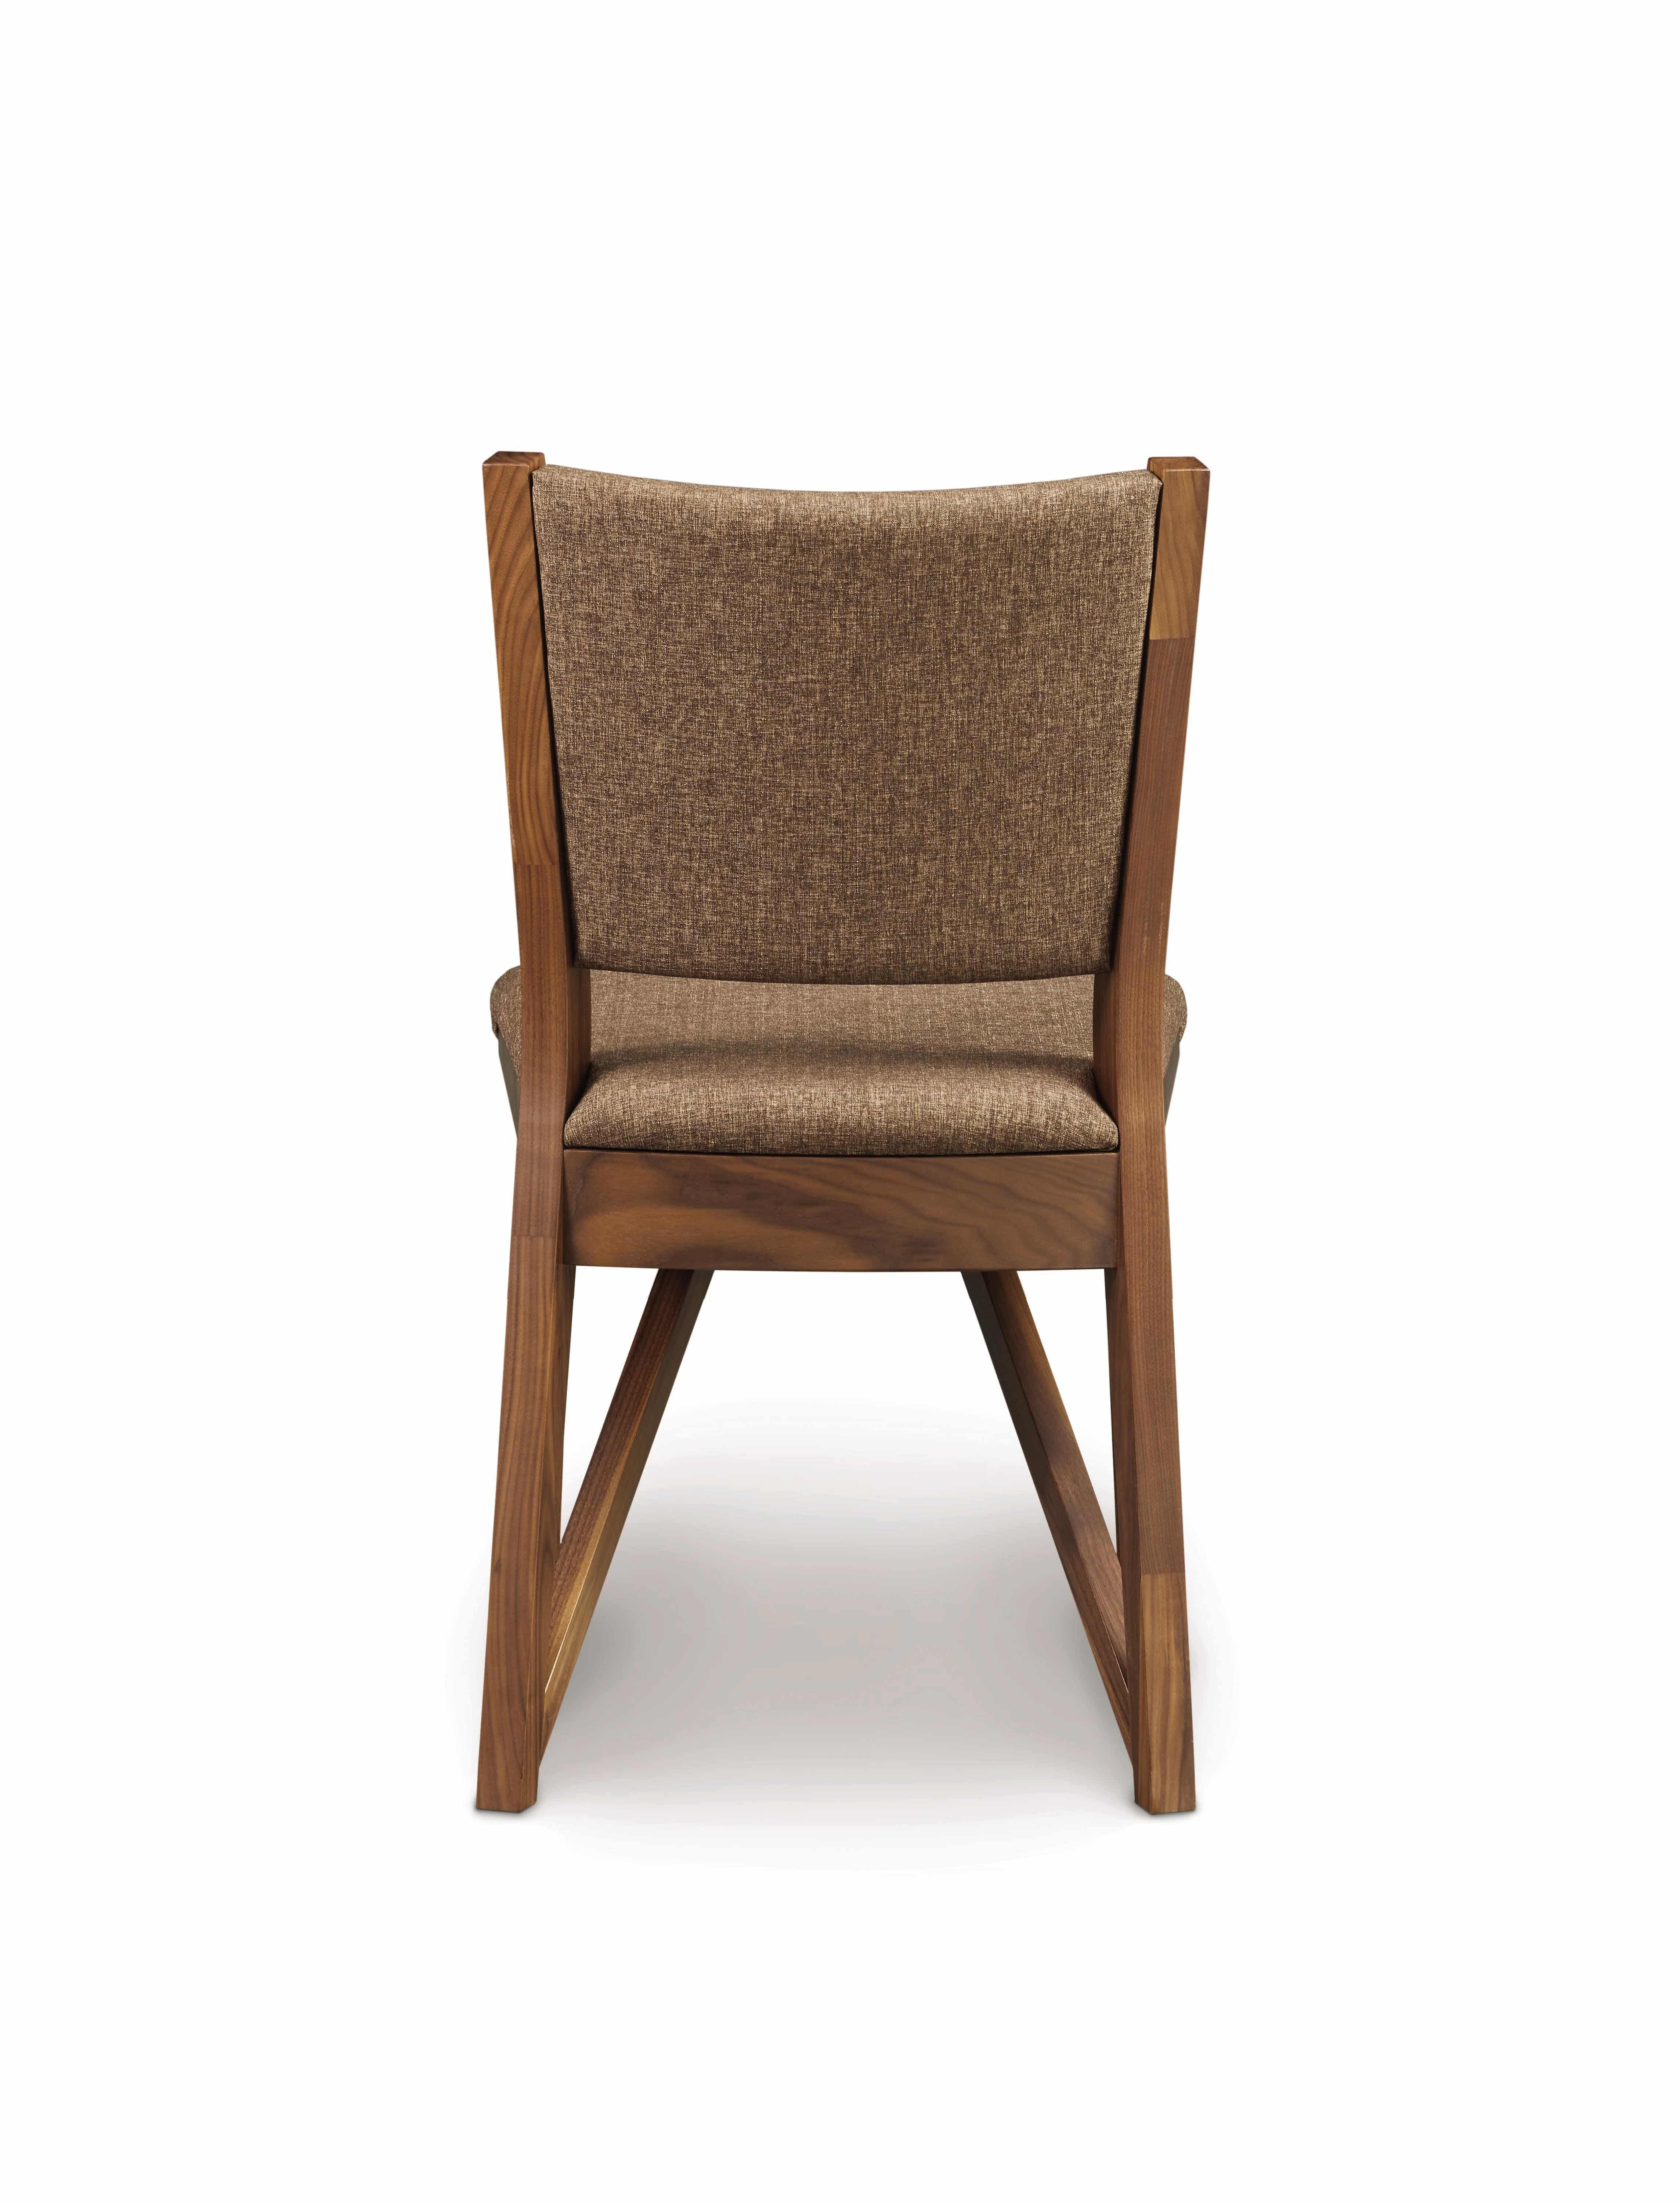 ExeterChairBackViewWalnut